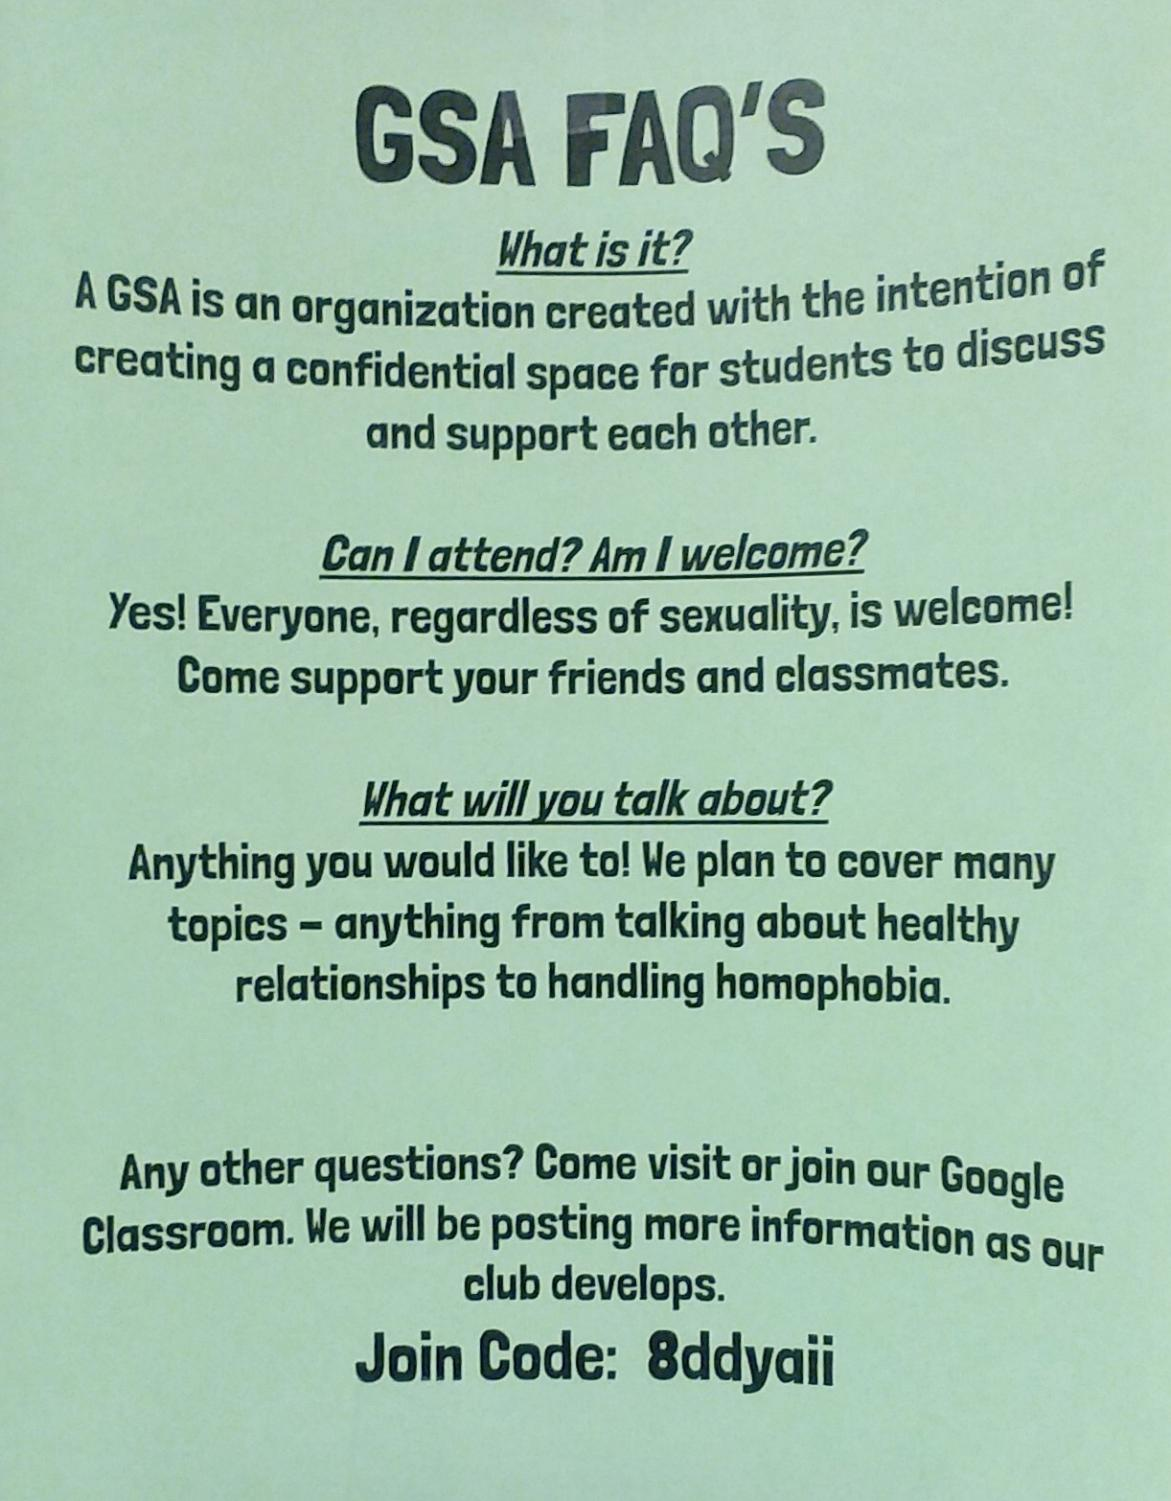 Flyers made by GSA members hang in the halls and include answers to questions people may have about the club.